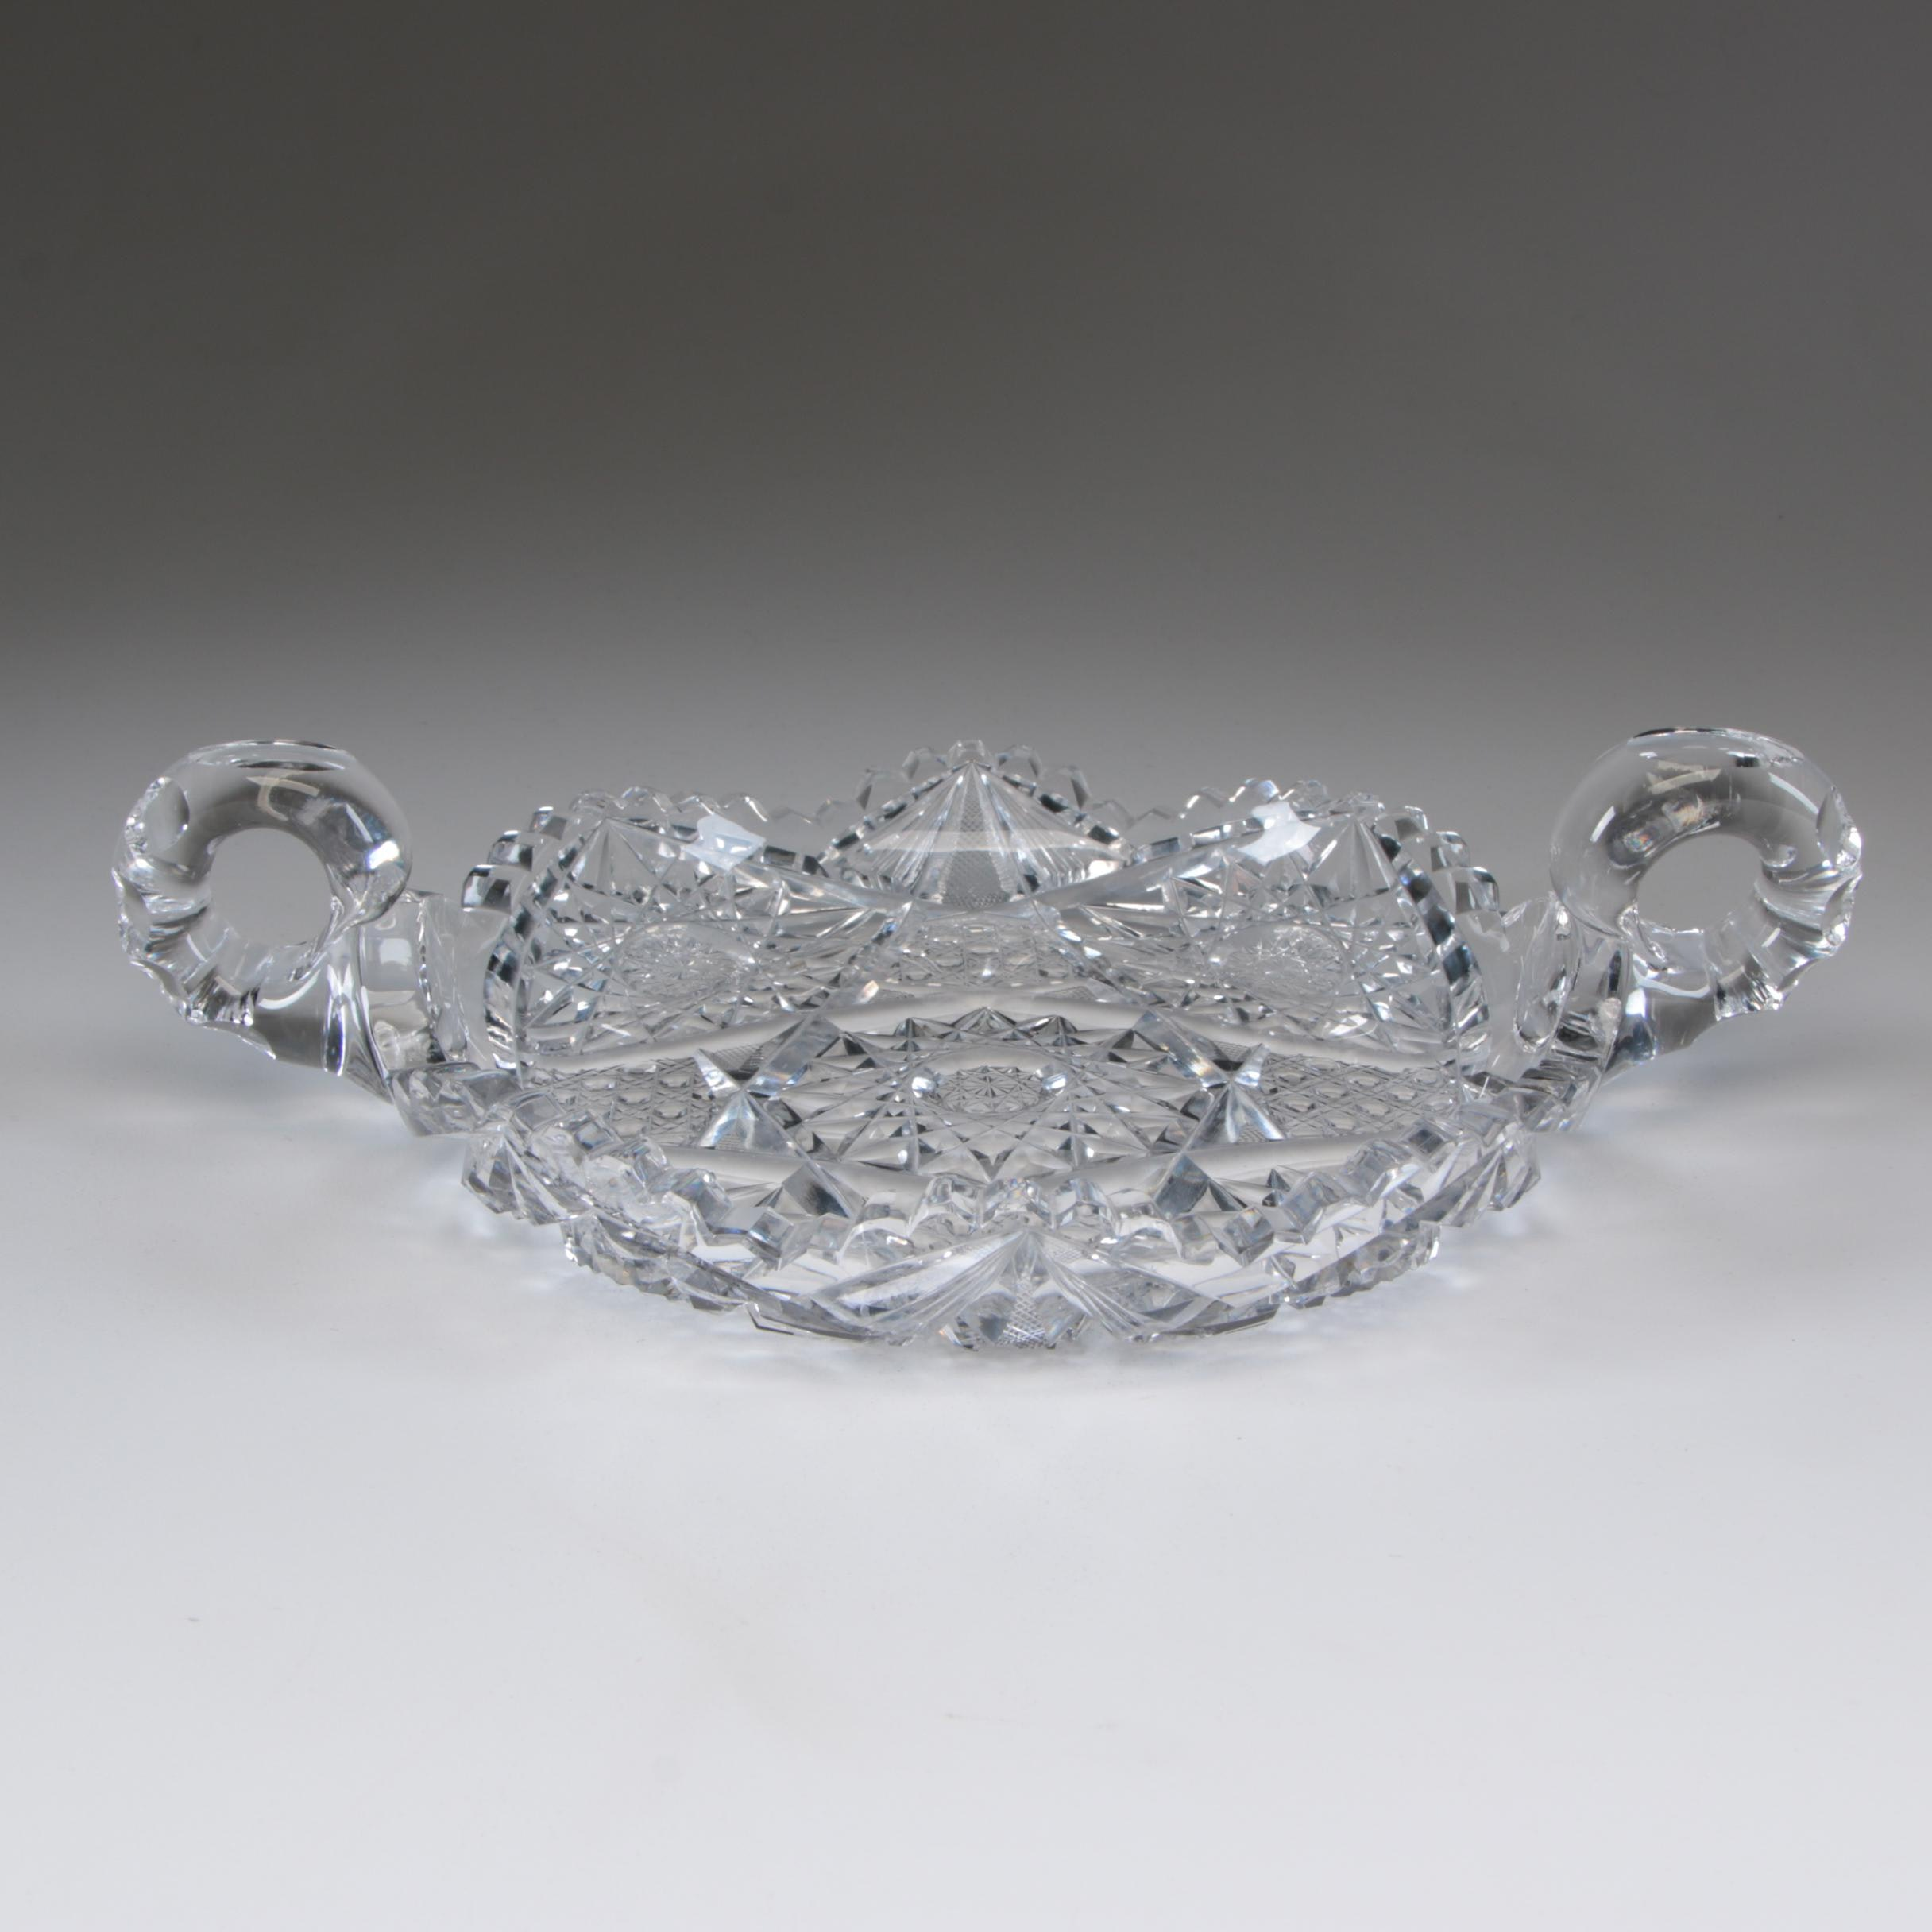 American Brilliant Cut Glass Serving Bowl with Scroll Handles